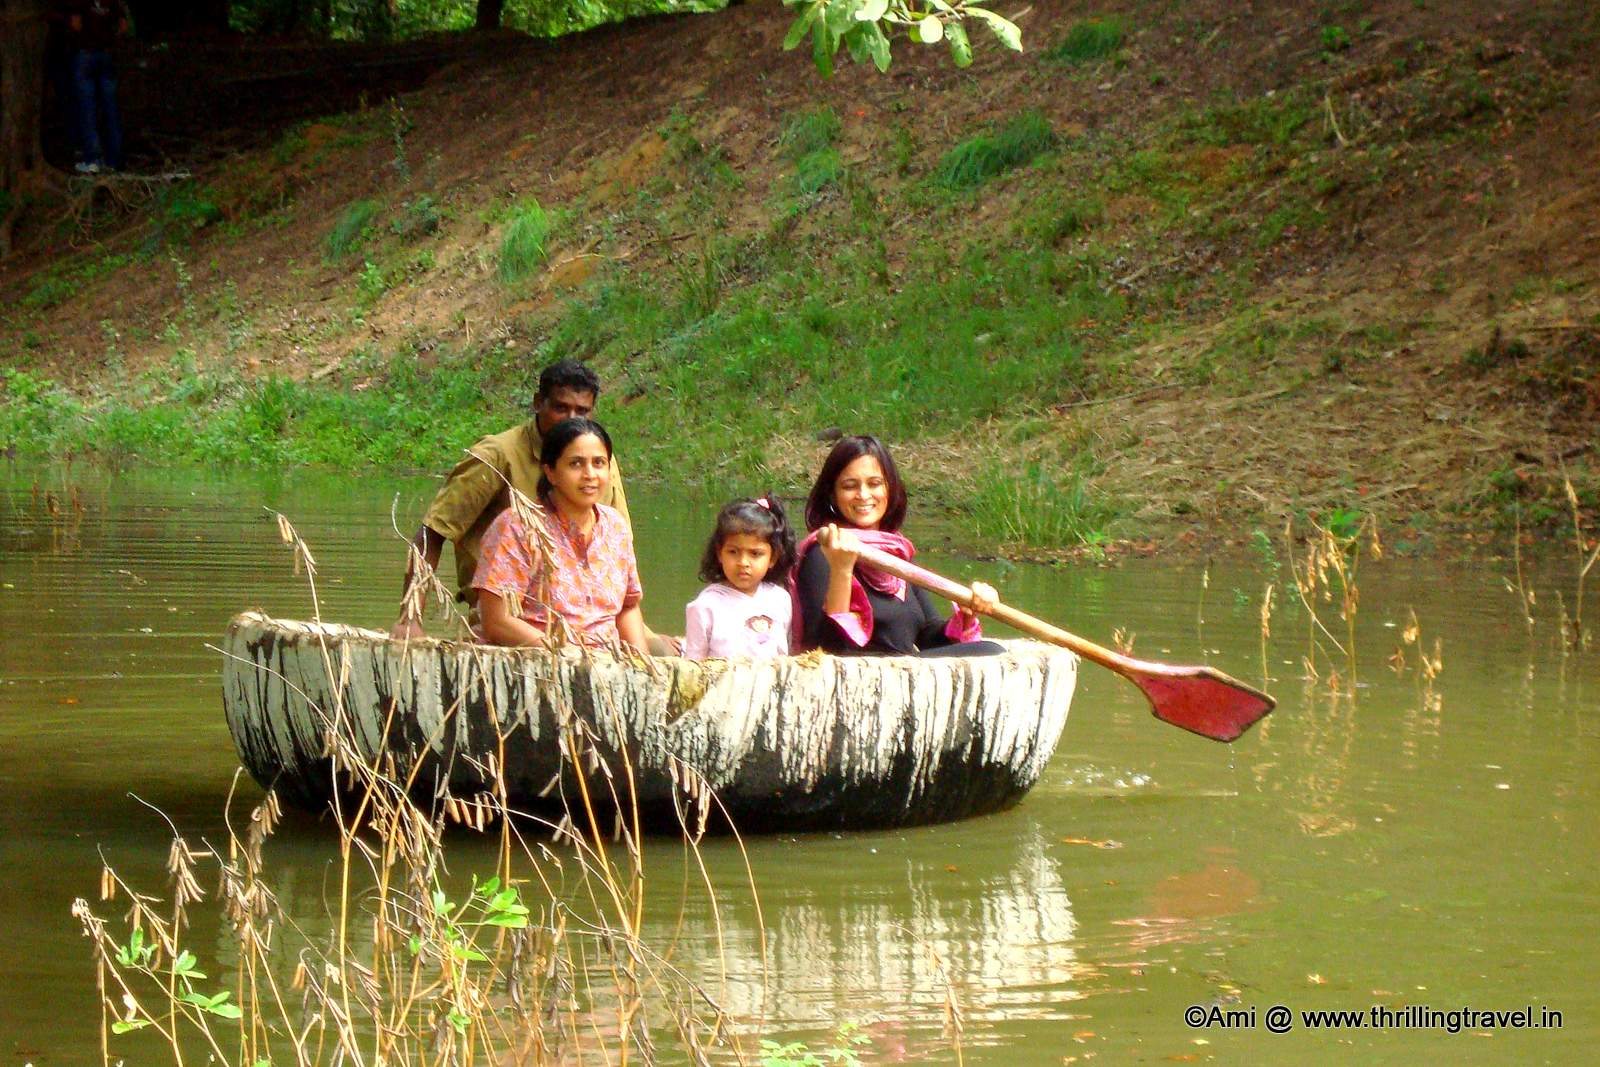 Coracle Ride at Bheemeshwari Fishing Camp